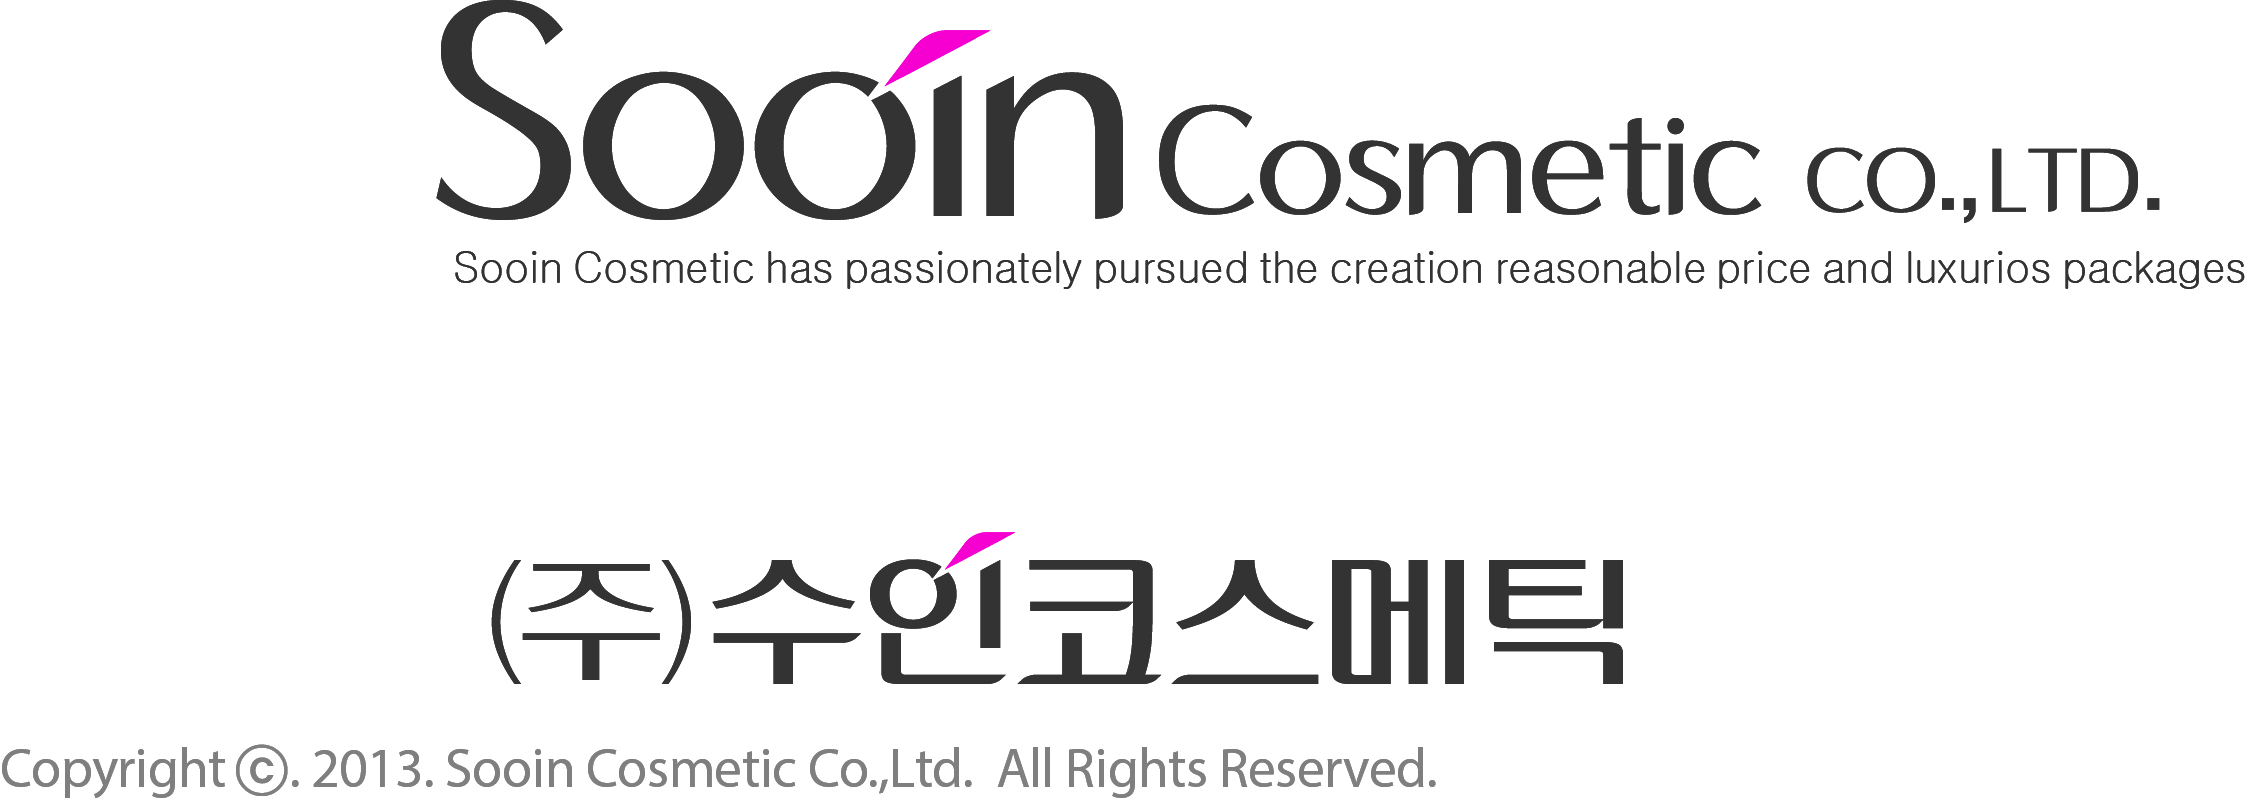 Sooin Cosmetic Co., Ltd.